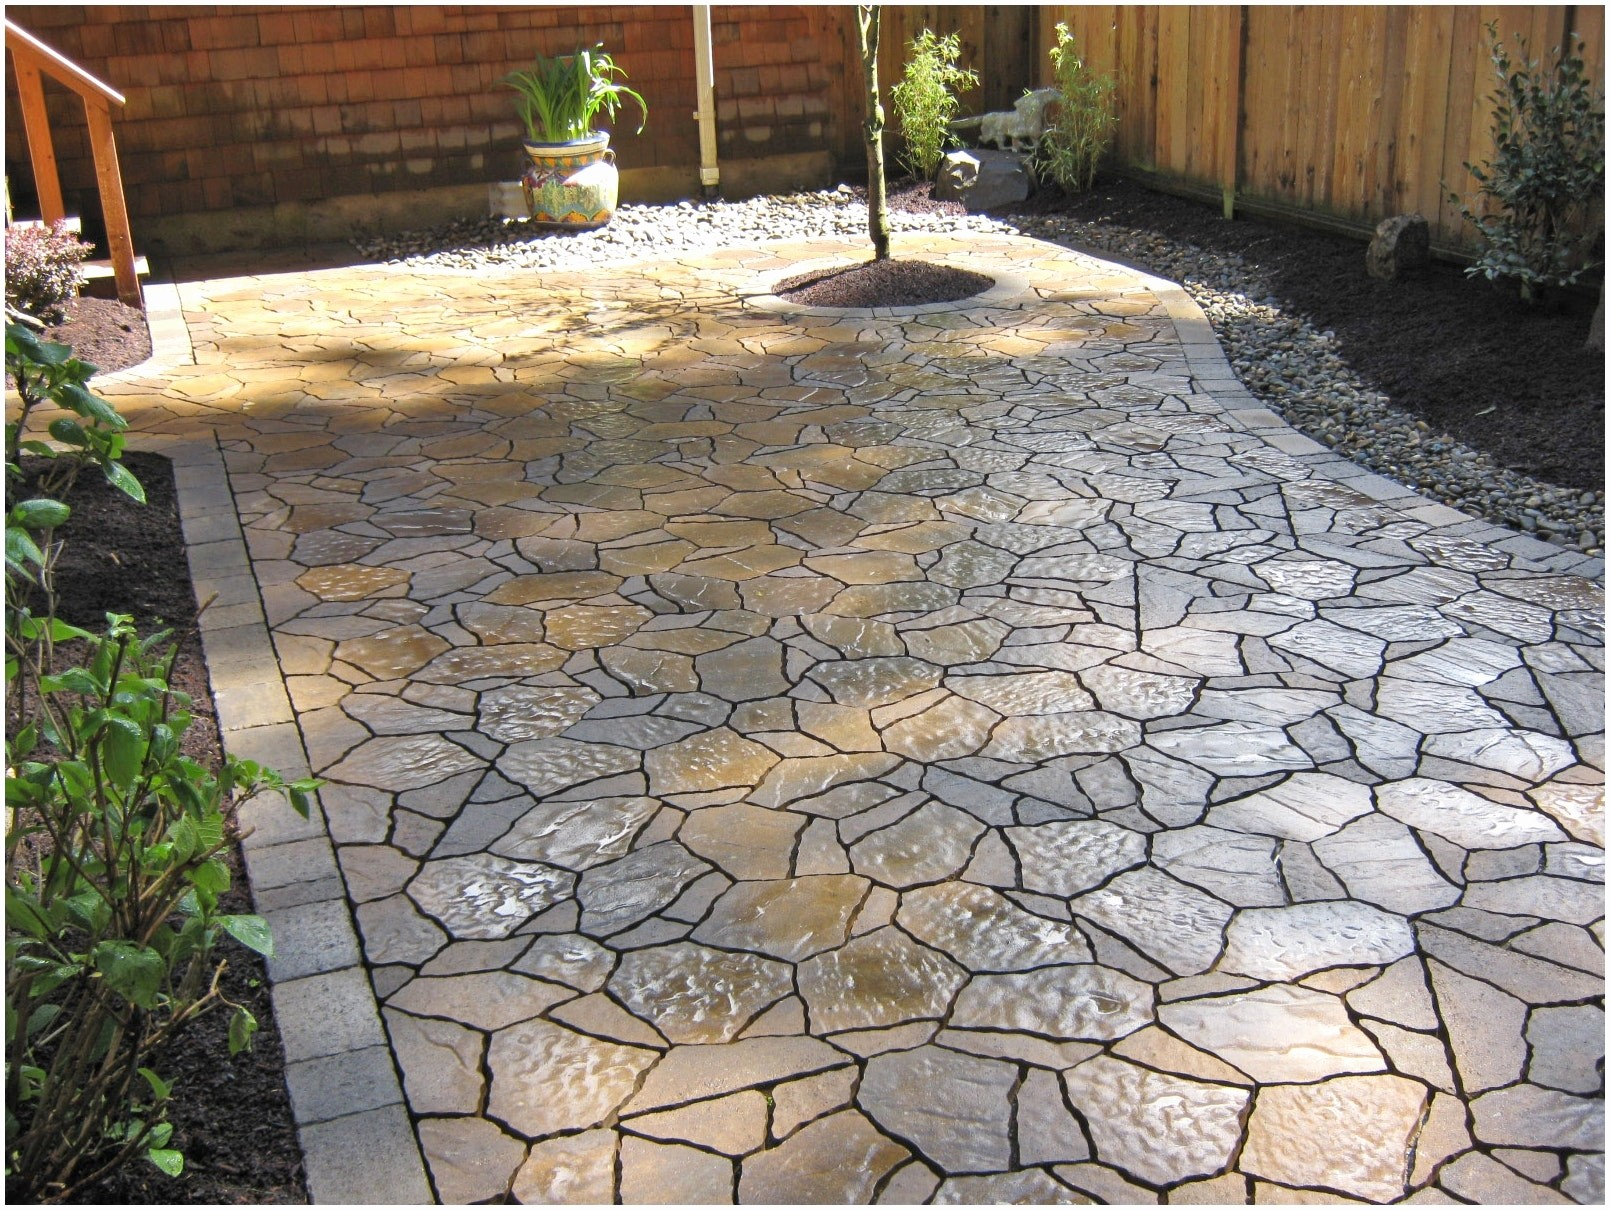 Paver Backyard Ideas Pavers Amazing Patio Landscaping Network For 9 intended for 10 Genius Ways How to Makeover Paver Backyard Ideas